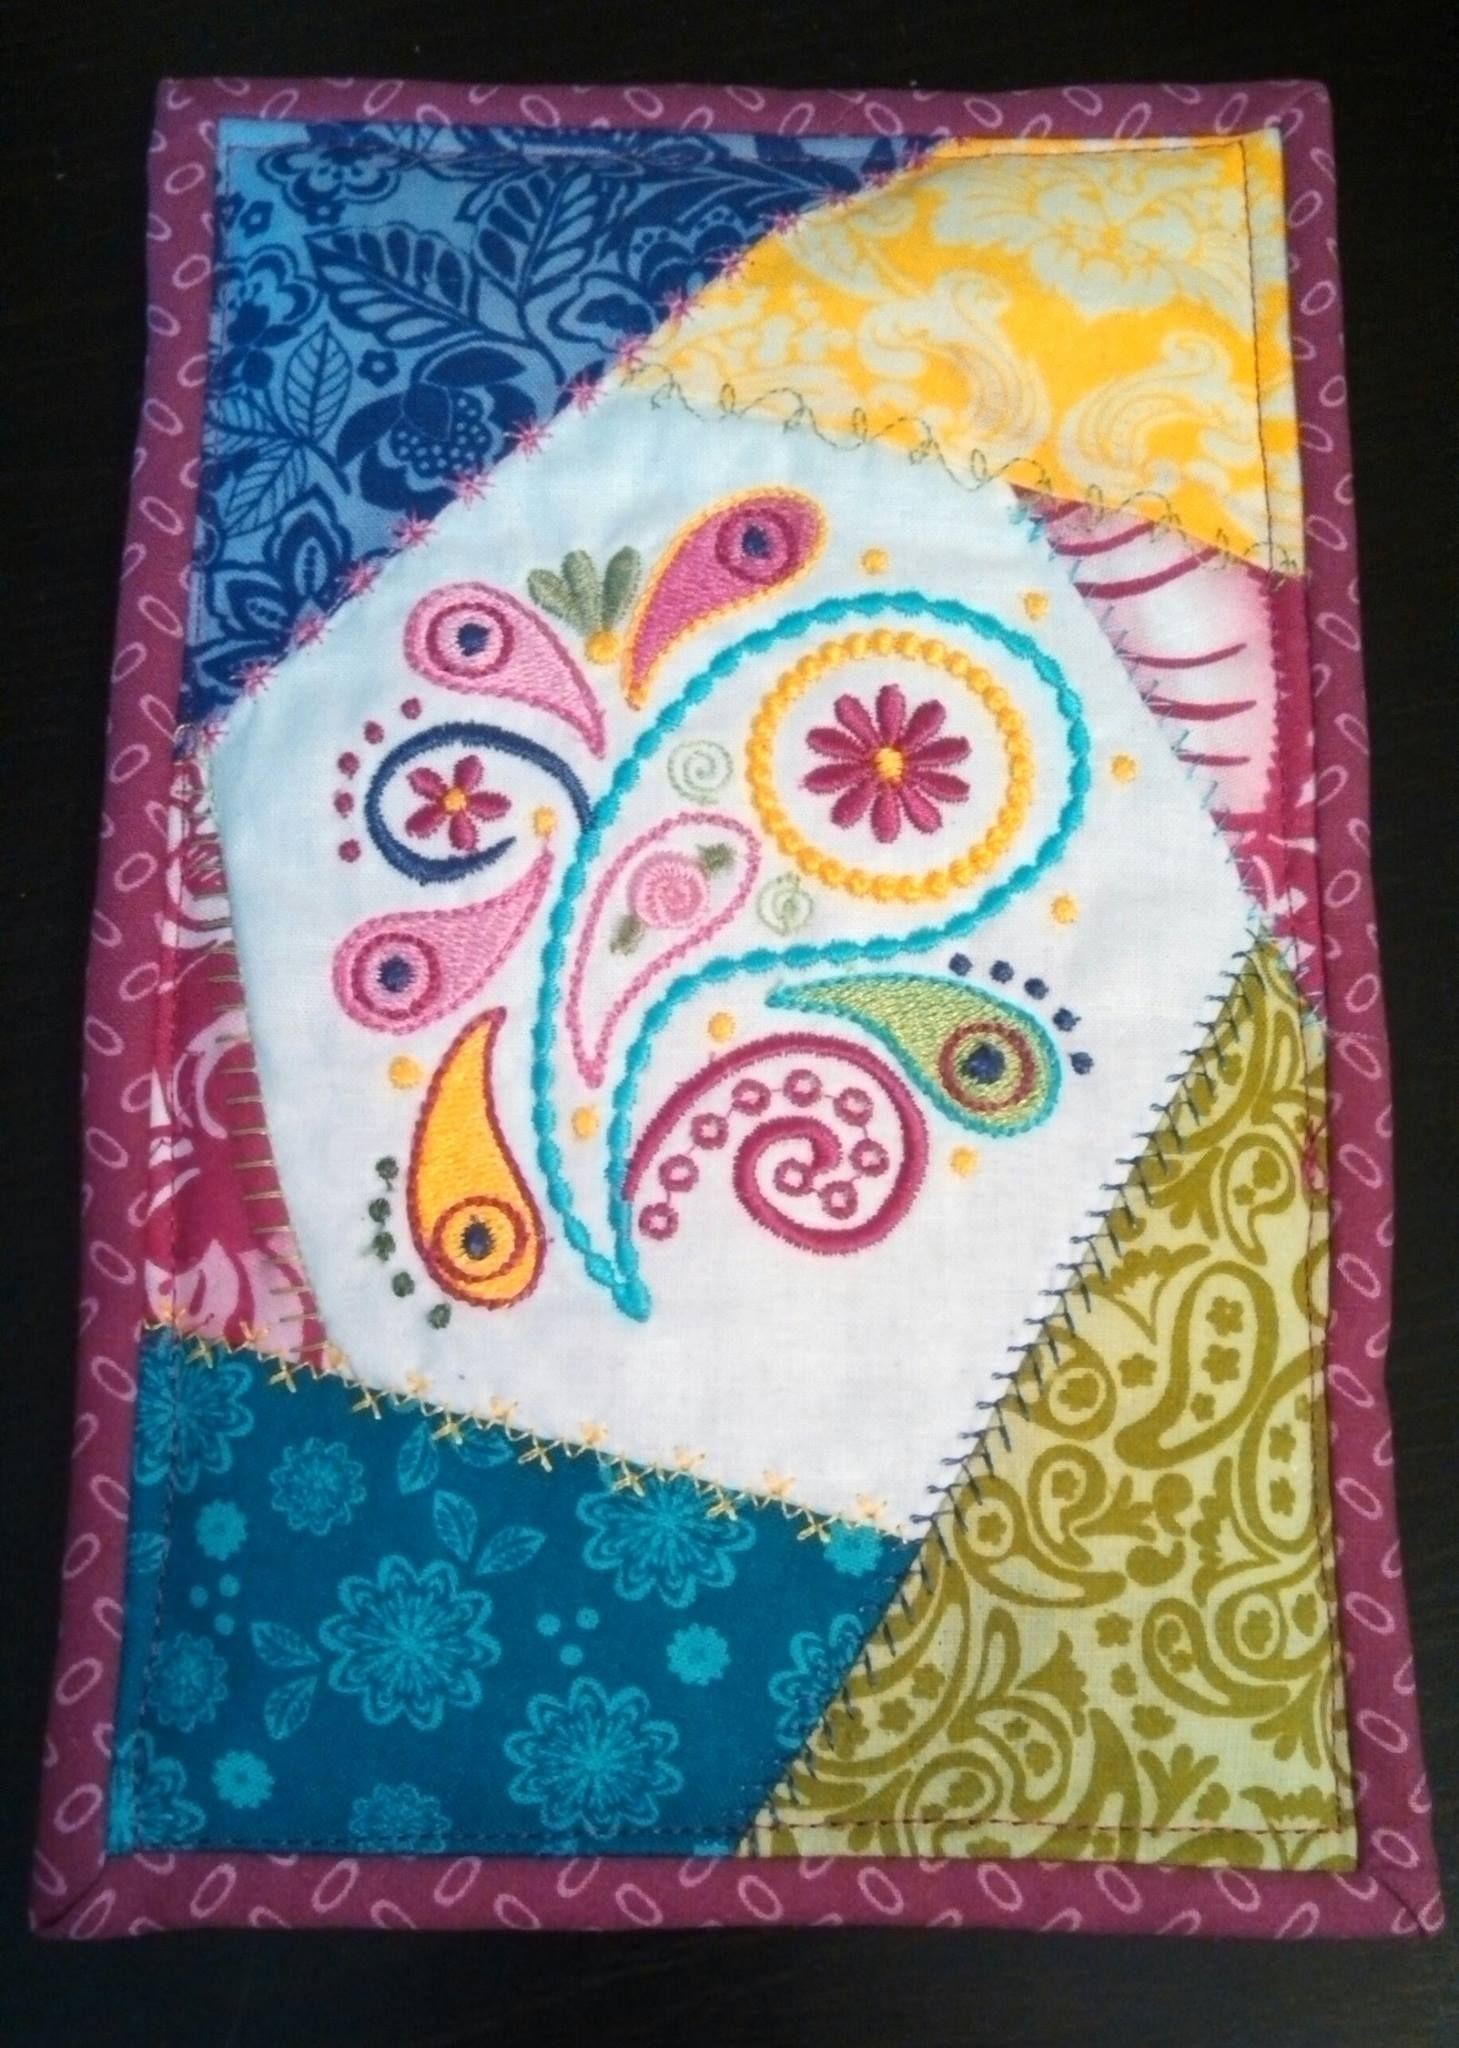 Wondering how to use our Crazy for Paisley designs? http://bit.ly/1gC35LN Dee Dee made this super sweet crazy quilt greeting card for her mom!